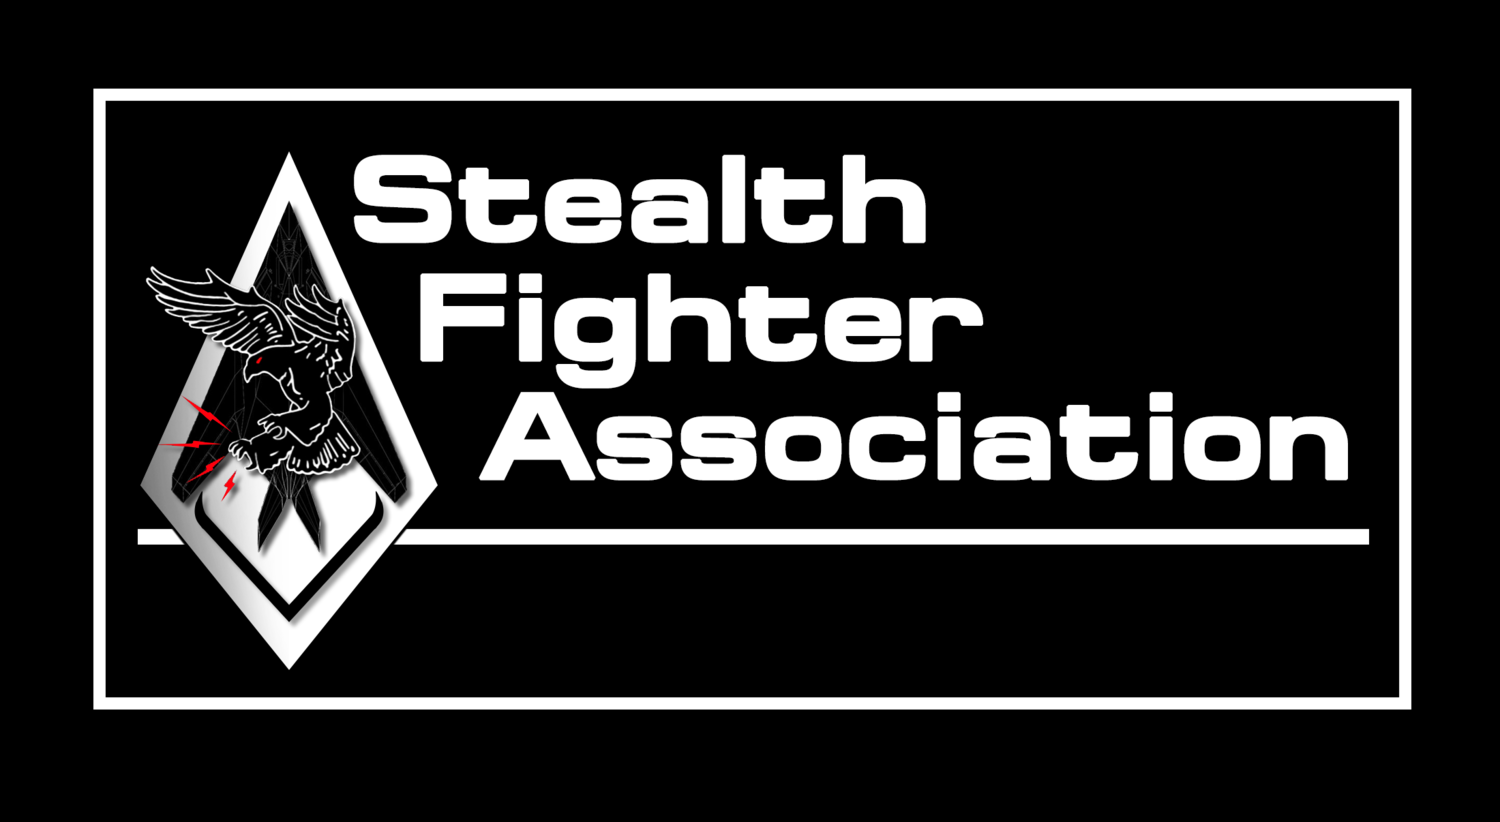 F-117 Stealth Fighter Association